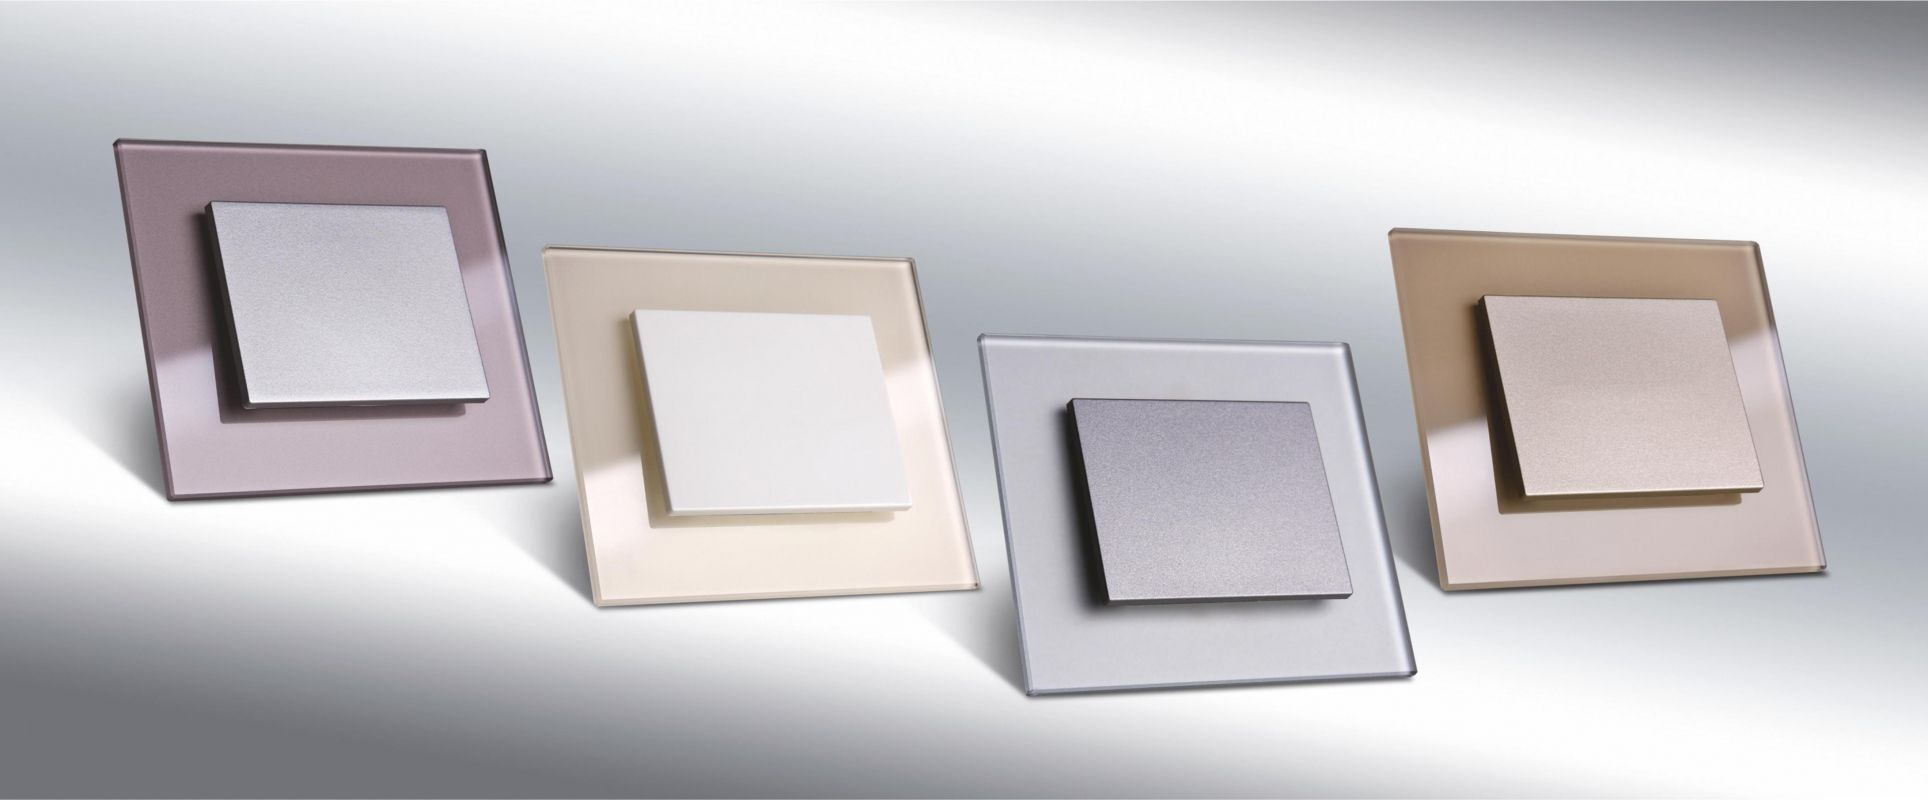 modern electrical switches for home - Google Search | Electrical ... for modern electrical switches for home  155sfw